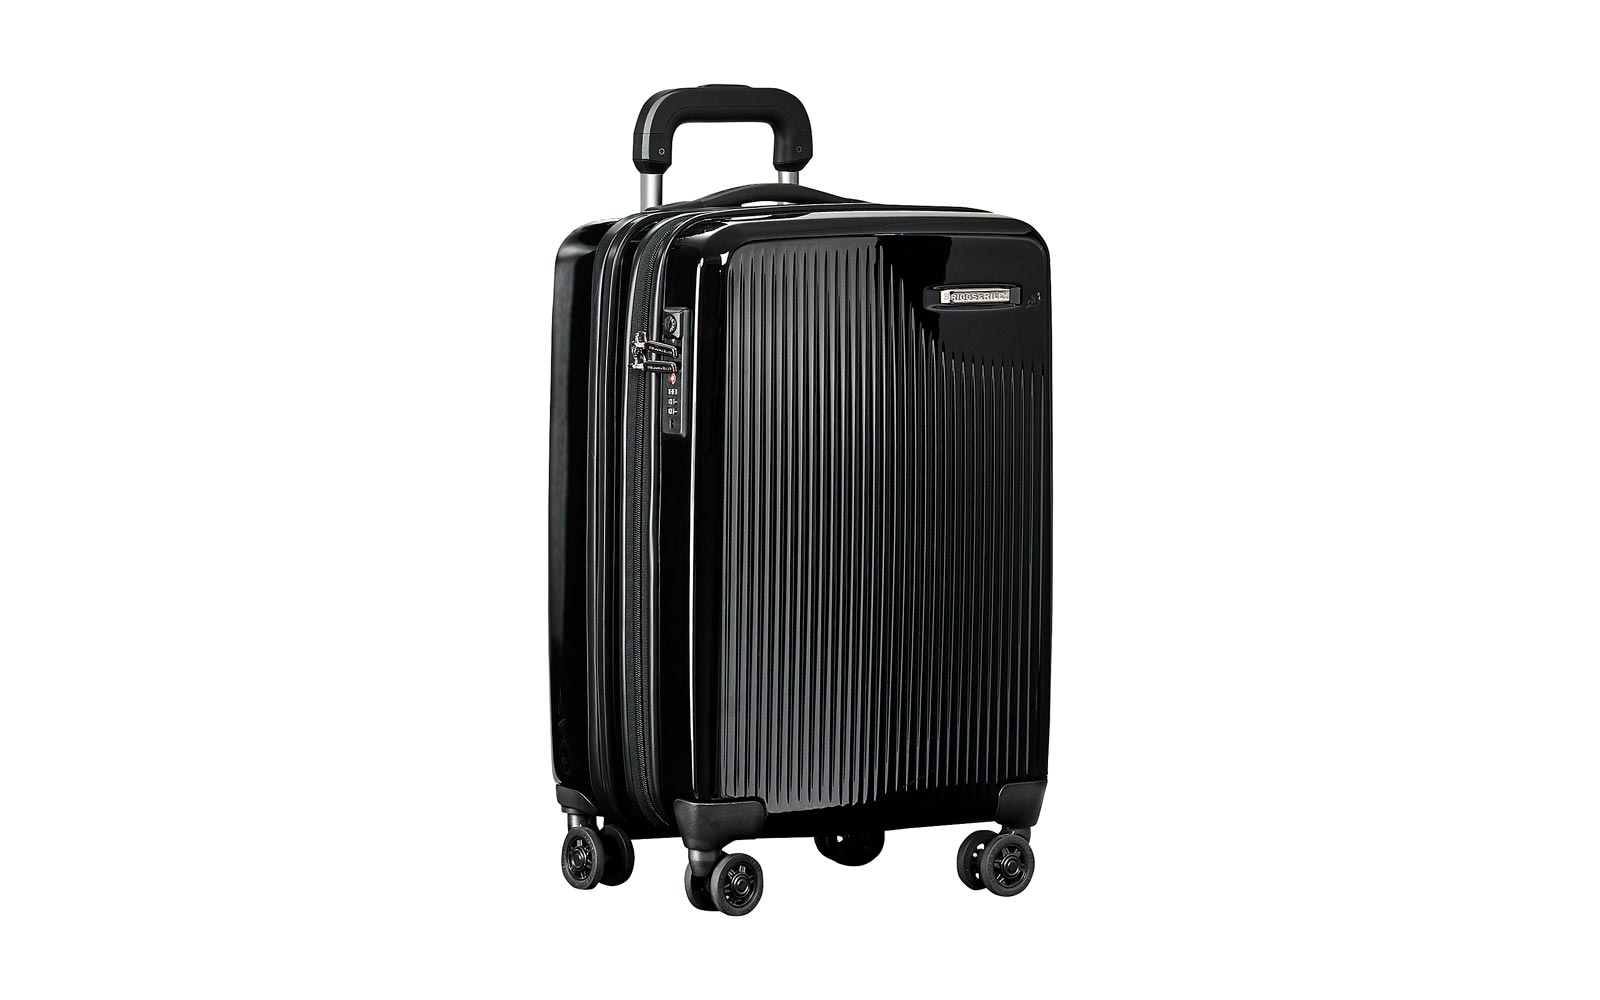 52f736c2b Best Hard-shell Carry-on: Briggs & Riley Sympatico Expandable 21-inch  International Spinner